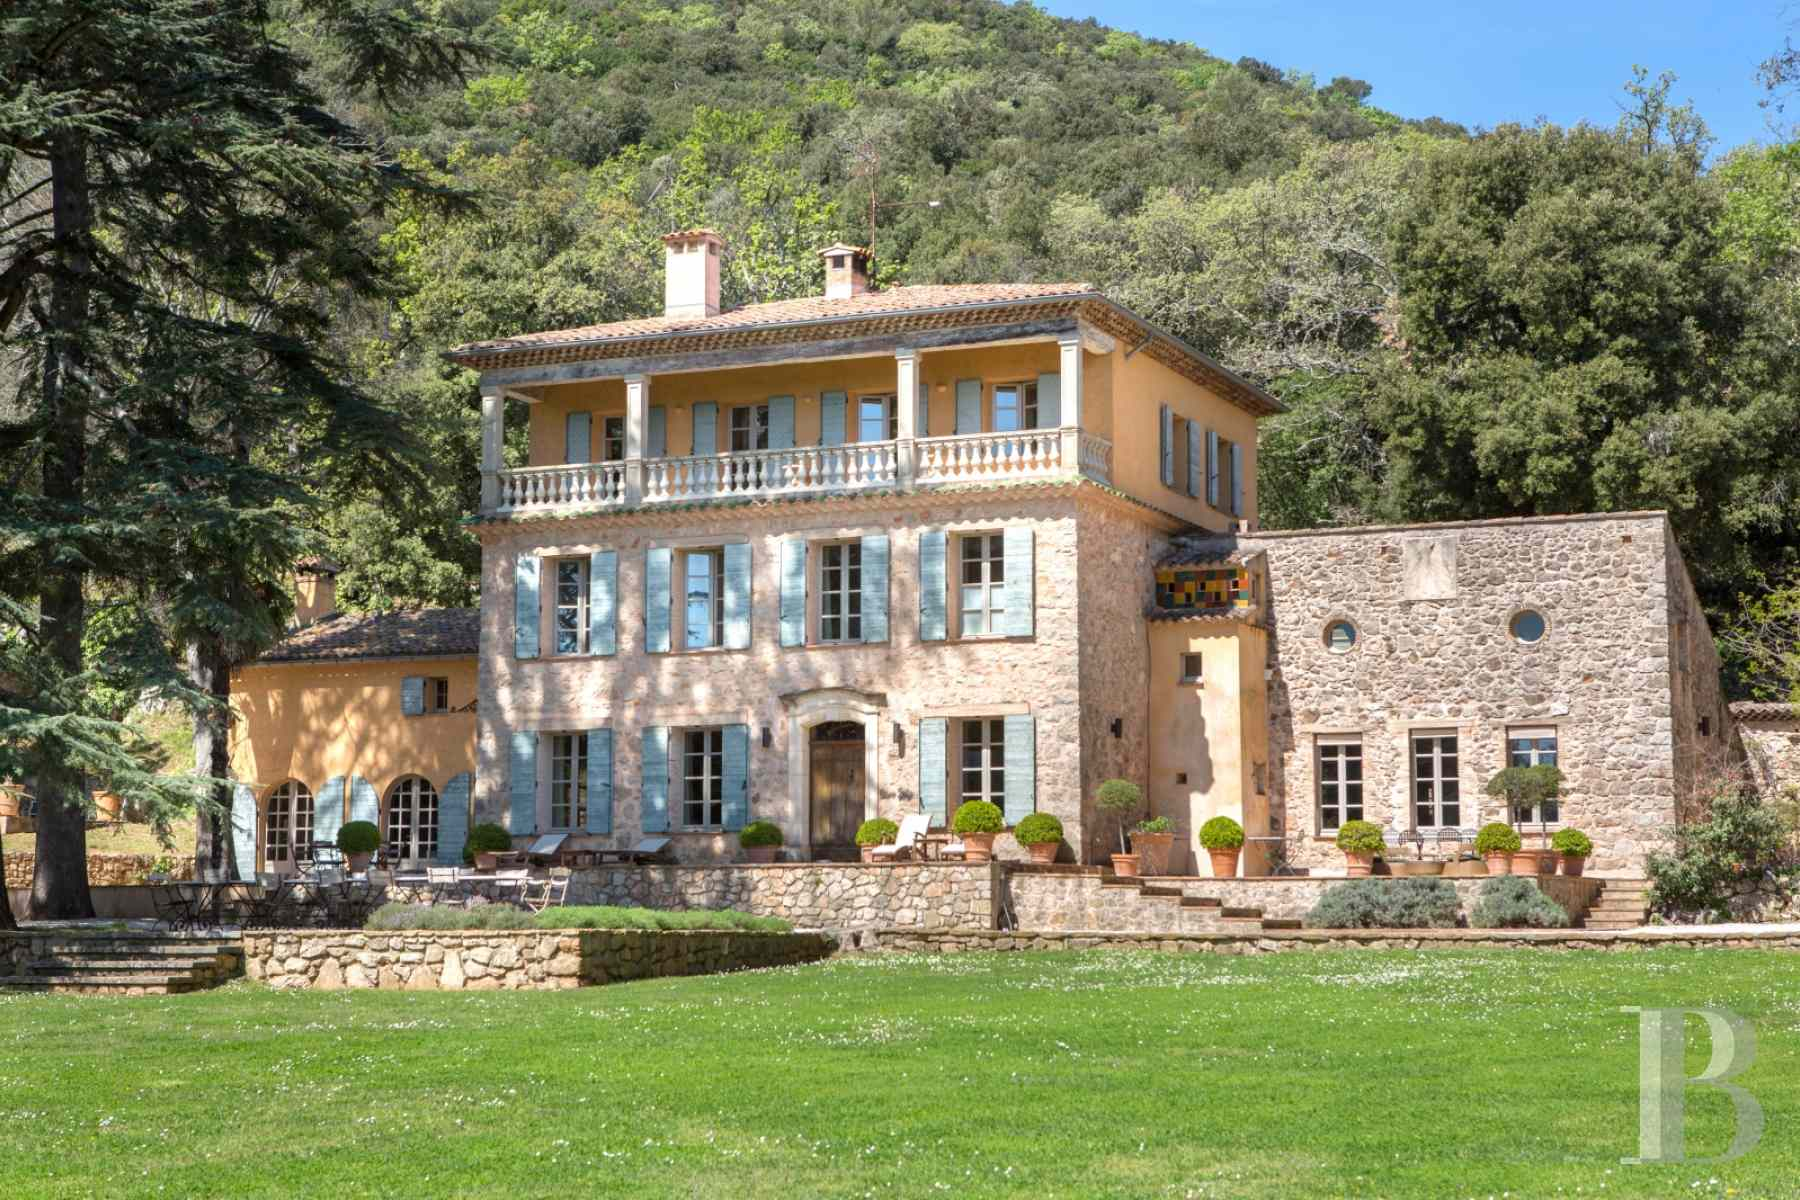 property for sale France provence cote dazur hyeres property - 2 zoom